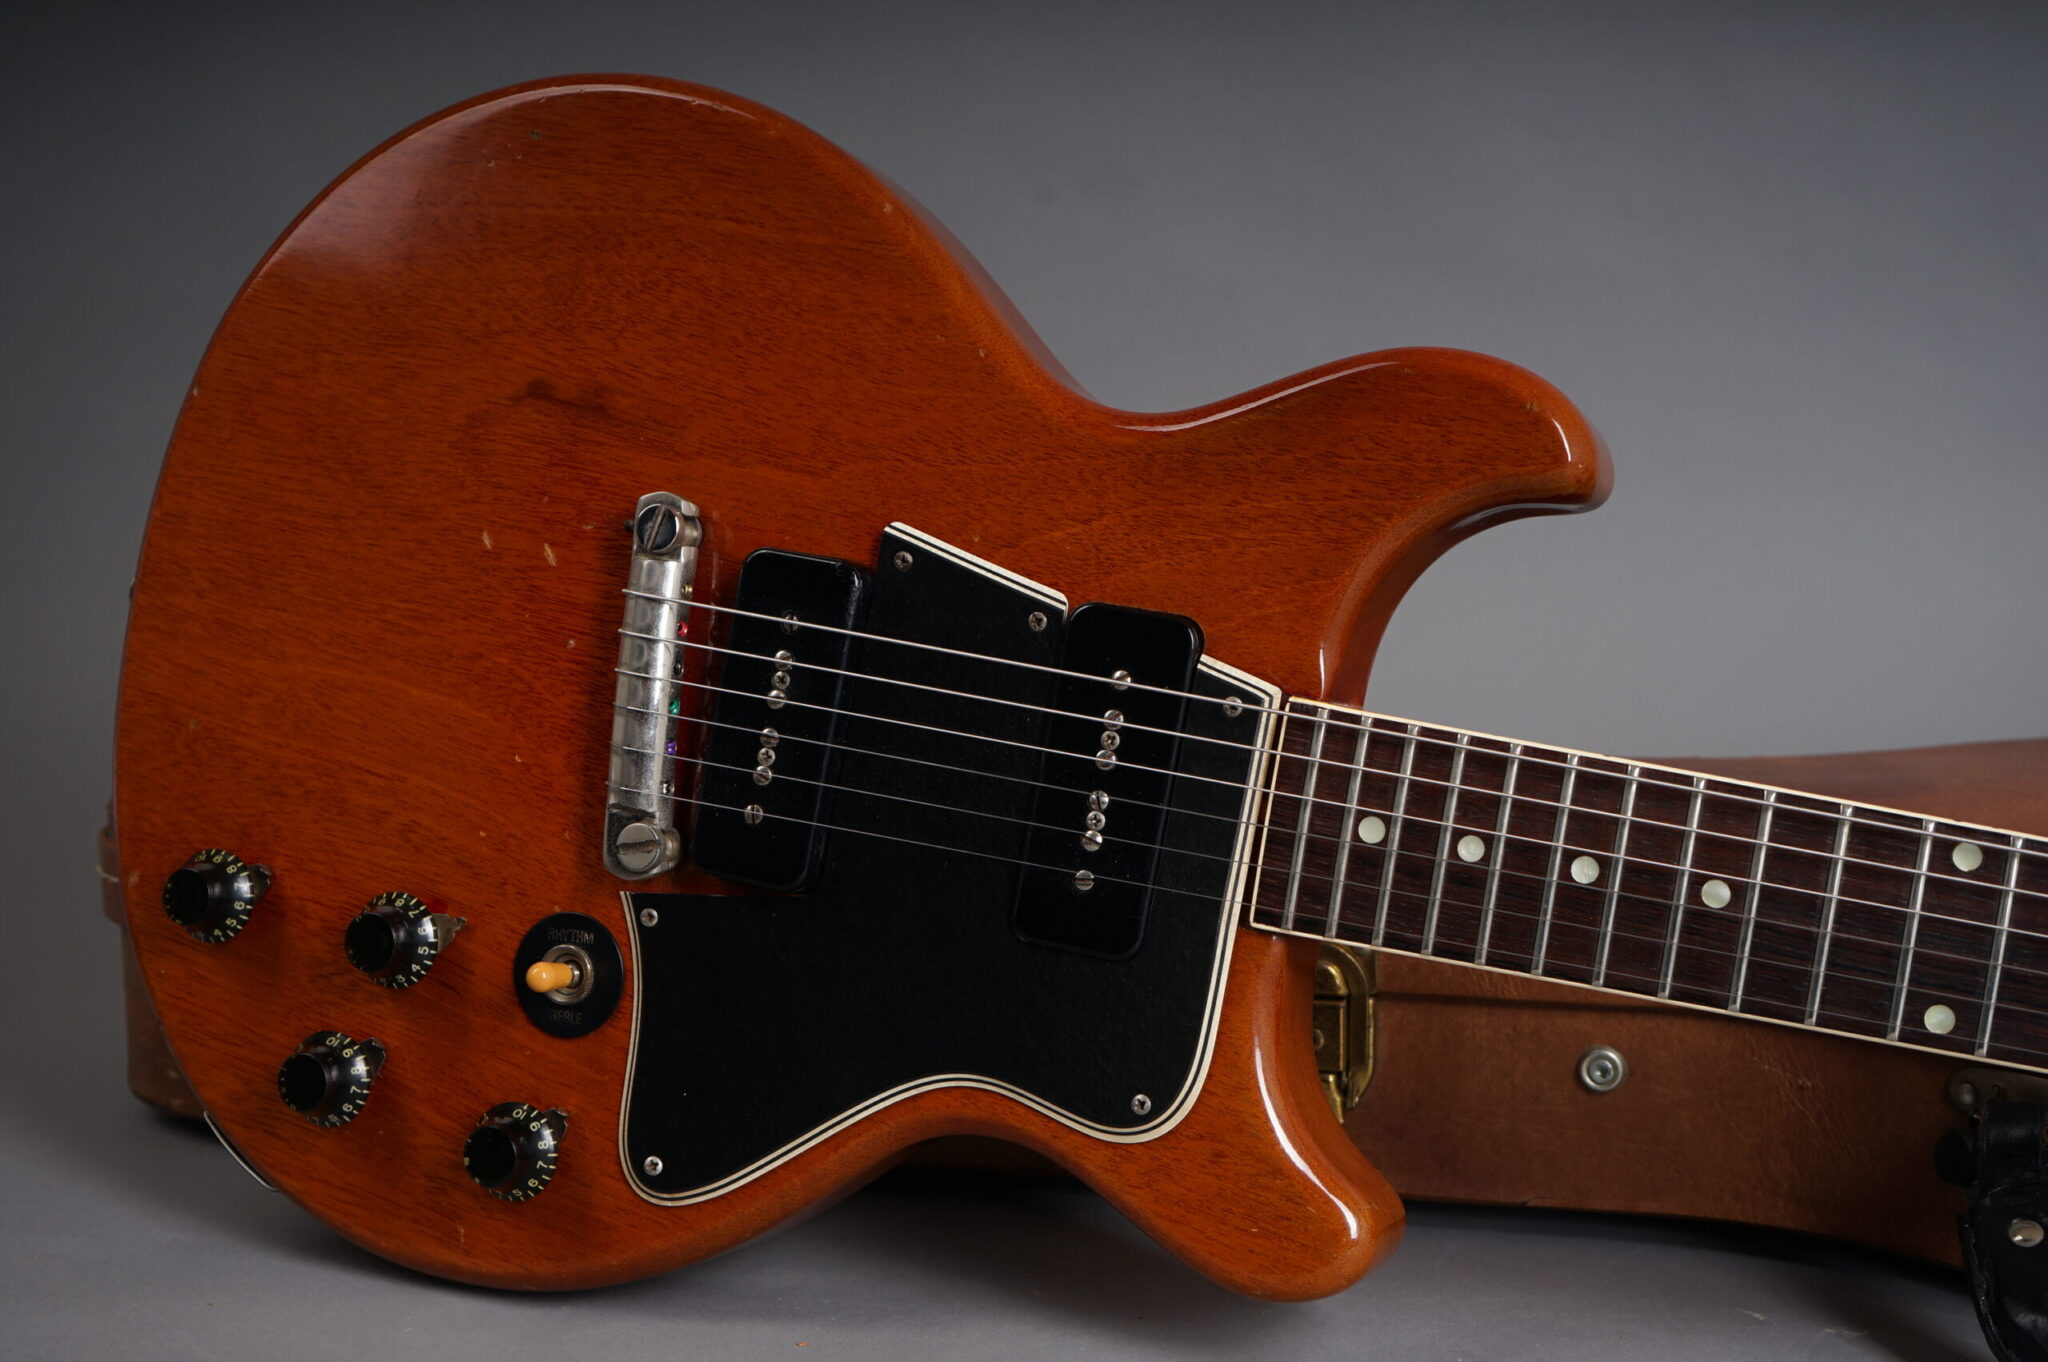 https://guitarpoint.de/app/uploads/products/1960-gibson-les-paul-special-cherry/1960-Gibson-Les-Special-Cherry-08437-9-scaled-2048x1362.jpg